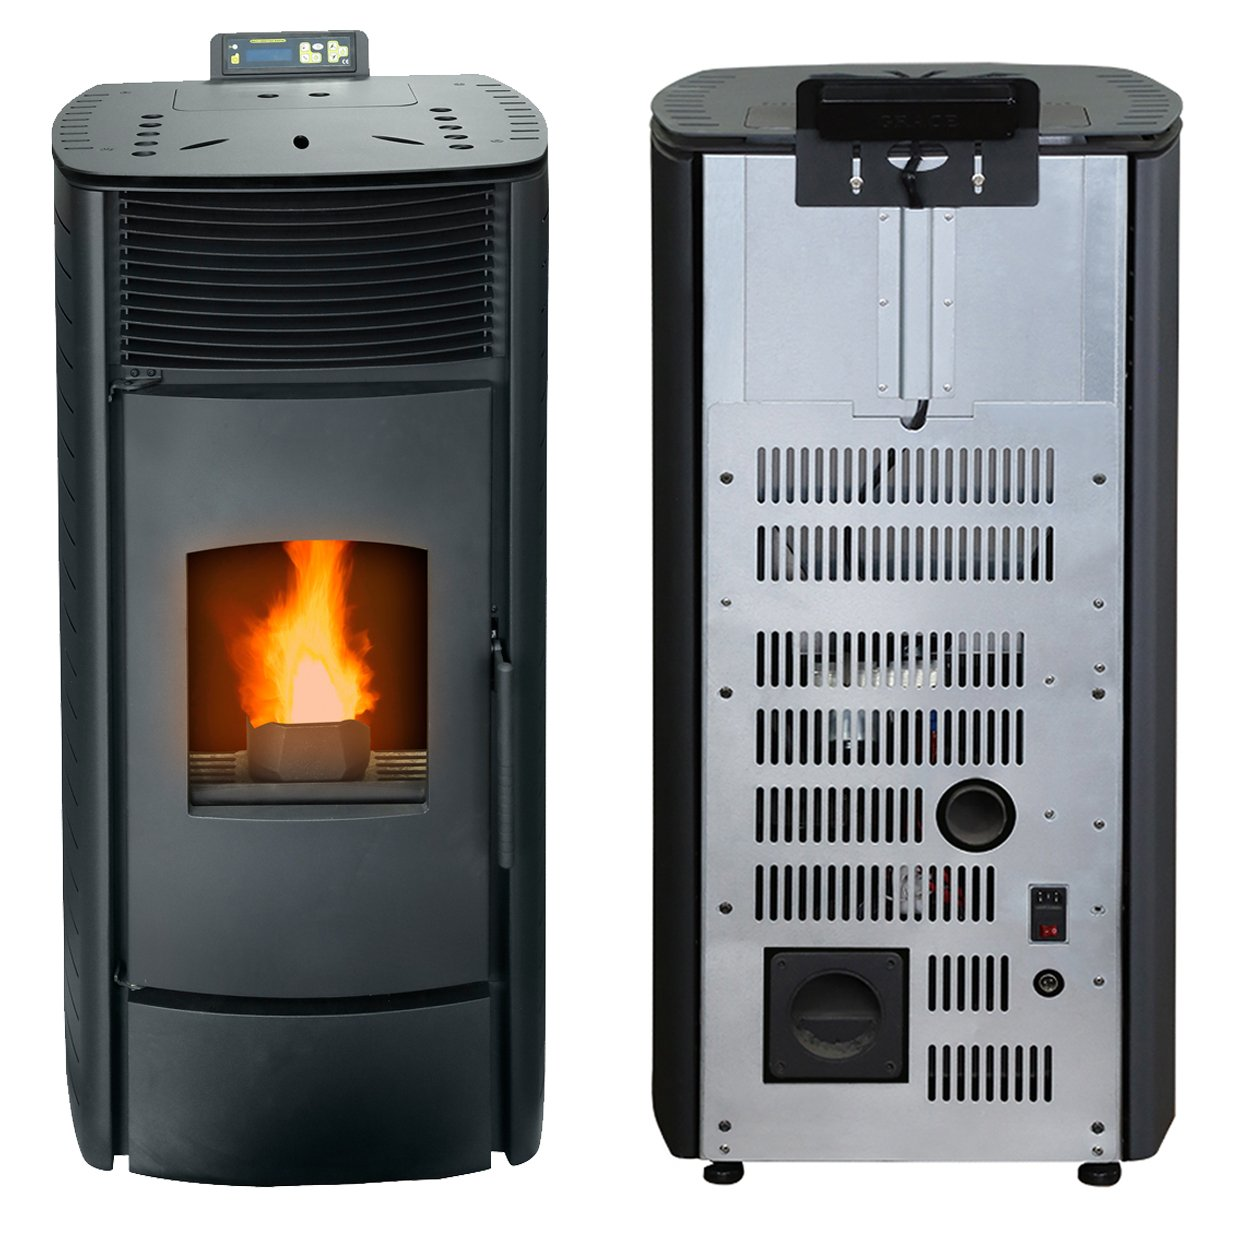 Nextstep Freestanding - Pellet stove for 1500 sq ft